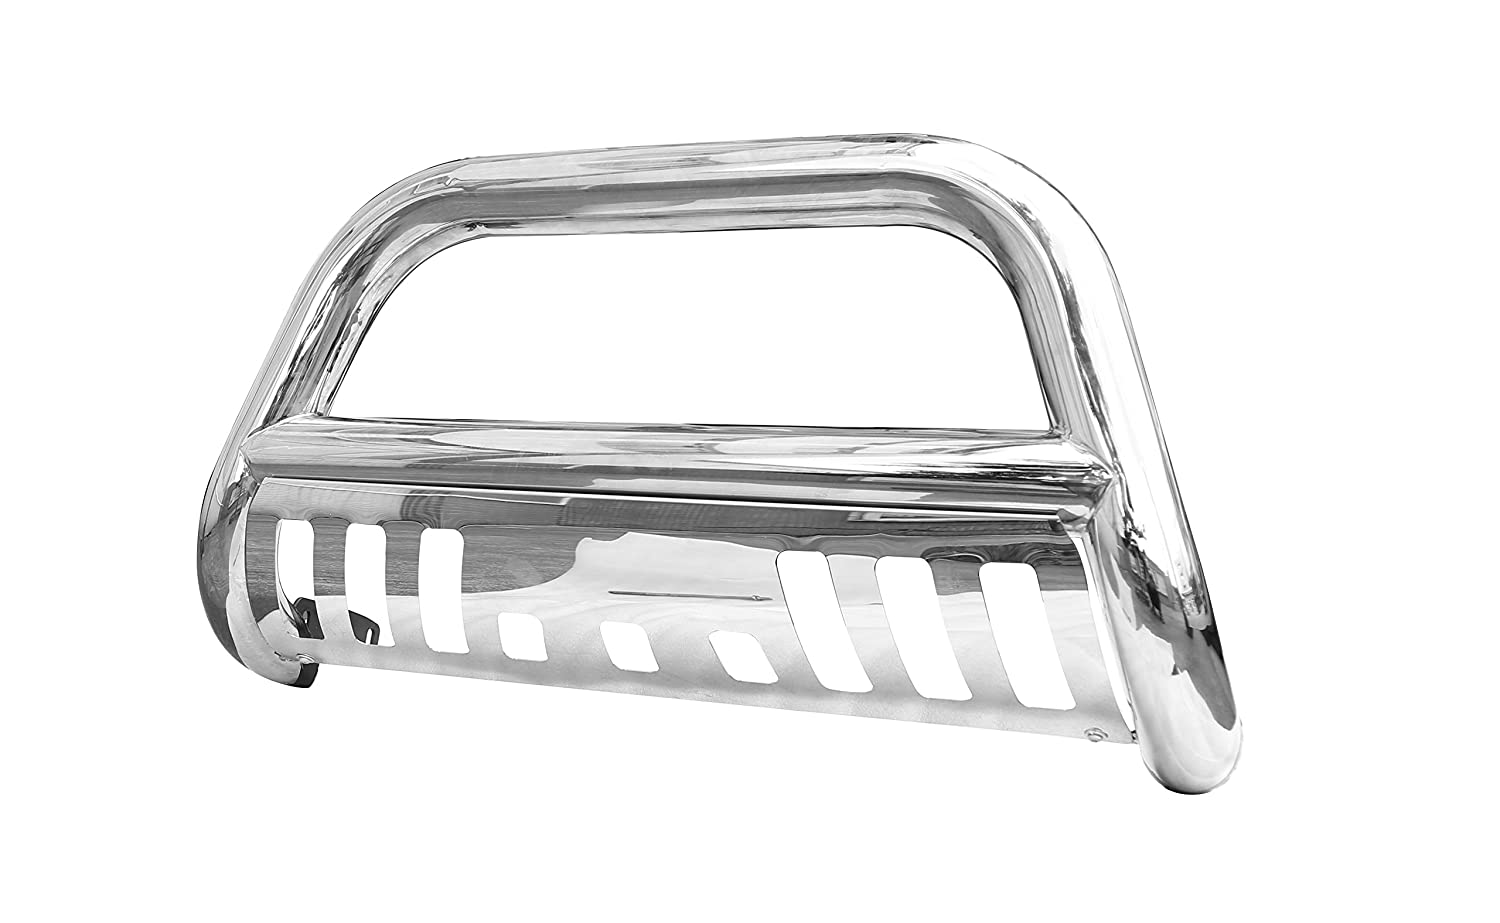 Super Drive D02G0400 For 1999-2007 GMC Sierra Classic 1500LD Stainless Steel Bull Bar Grill Guard Bumper With Skid Plate and Optional Light Holes